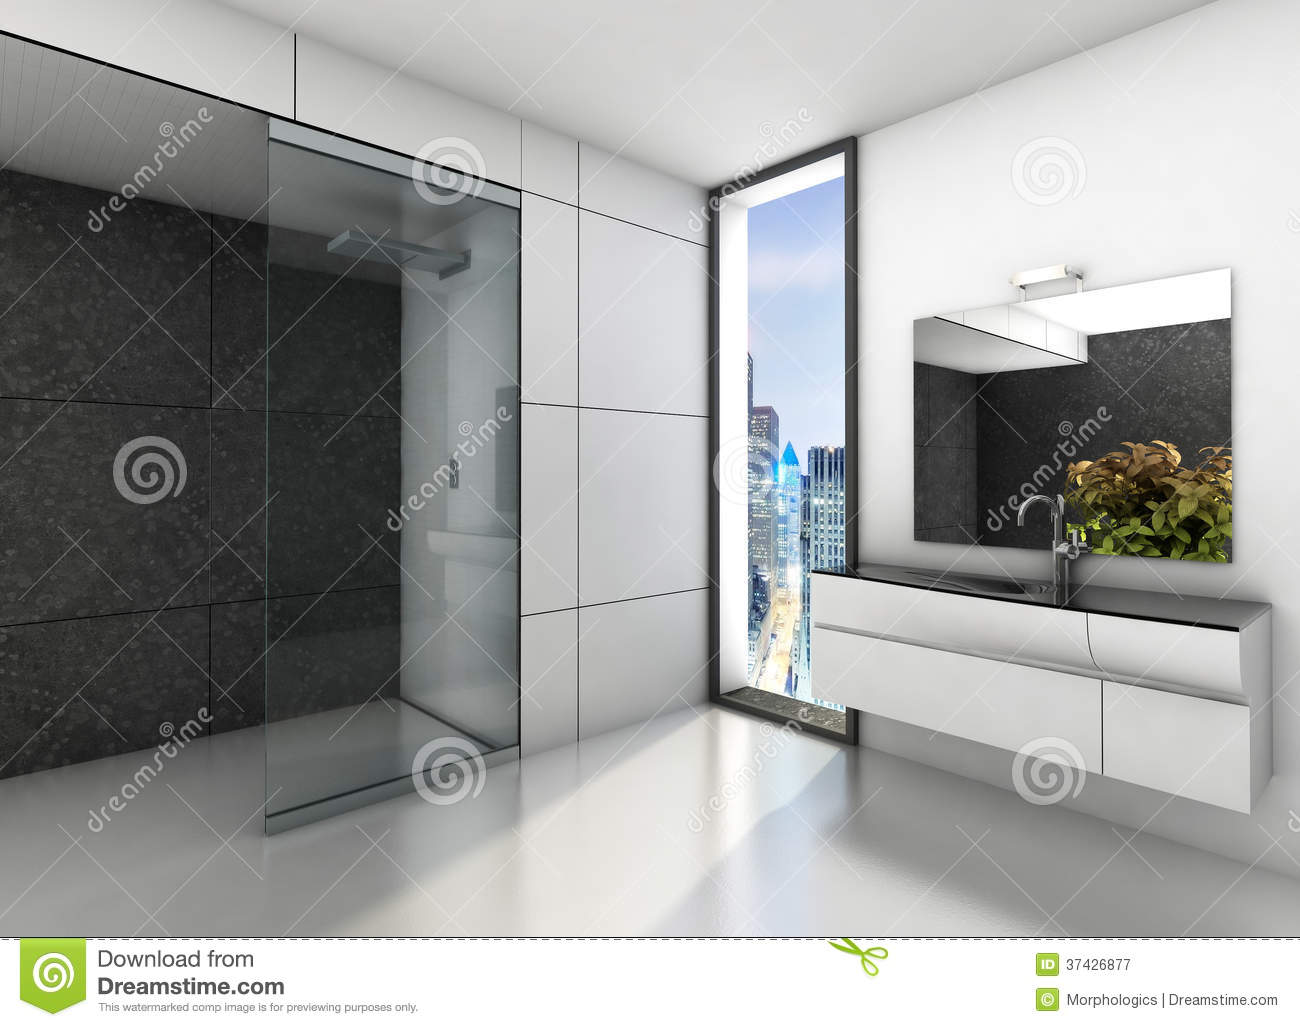 Modern bathroom royalty free stock photography image 37426877 - Interior design bathroom colors ...